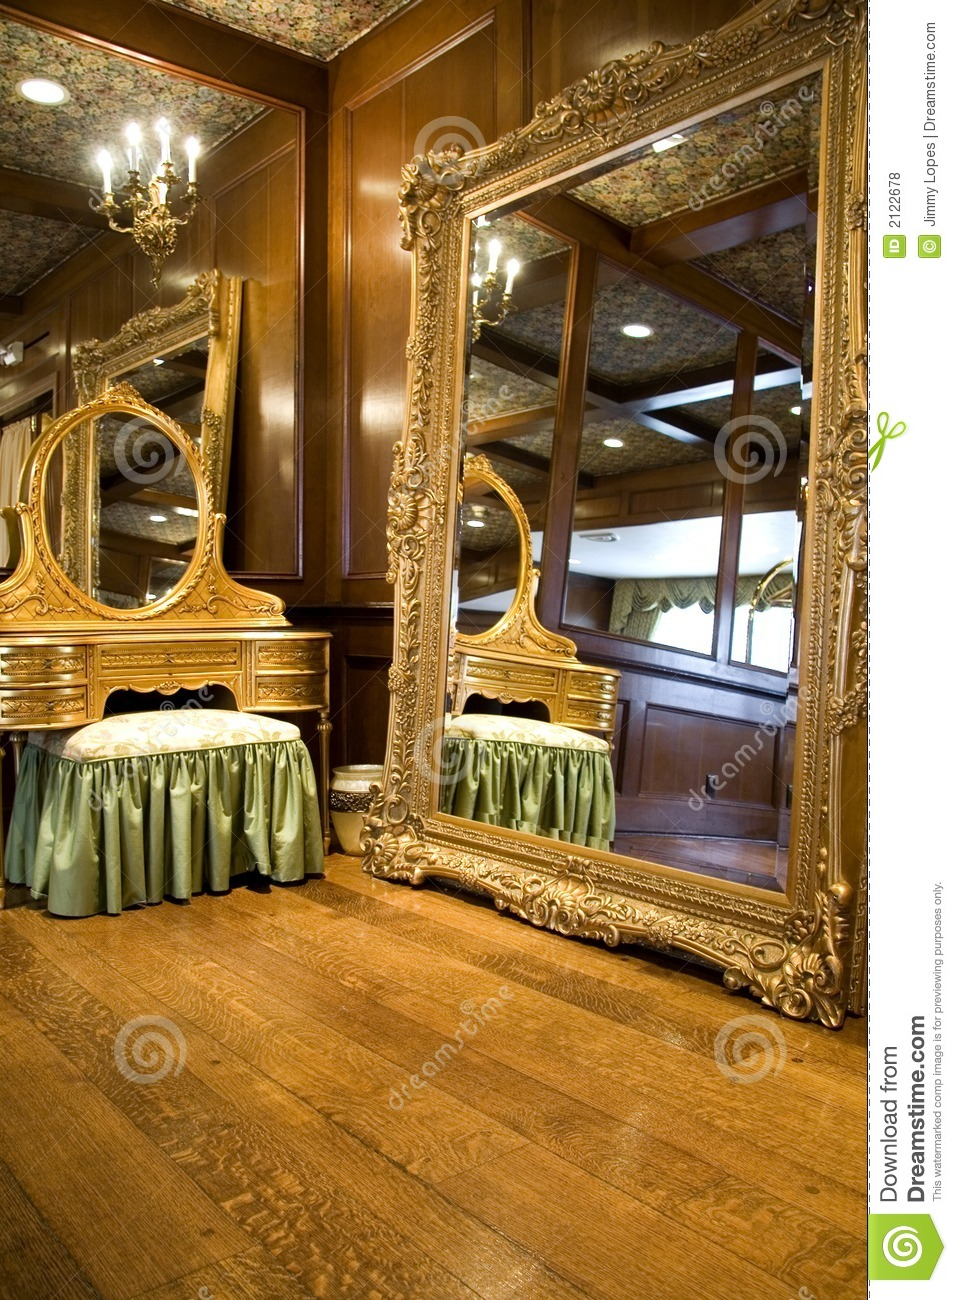 traditional pictures for living room modern l shaped sofa in antique mirror and dresser stock photo. image of candles ...